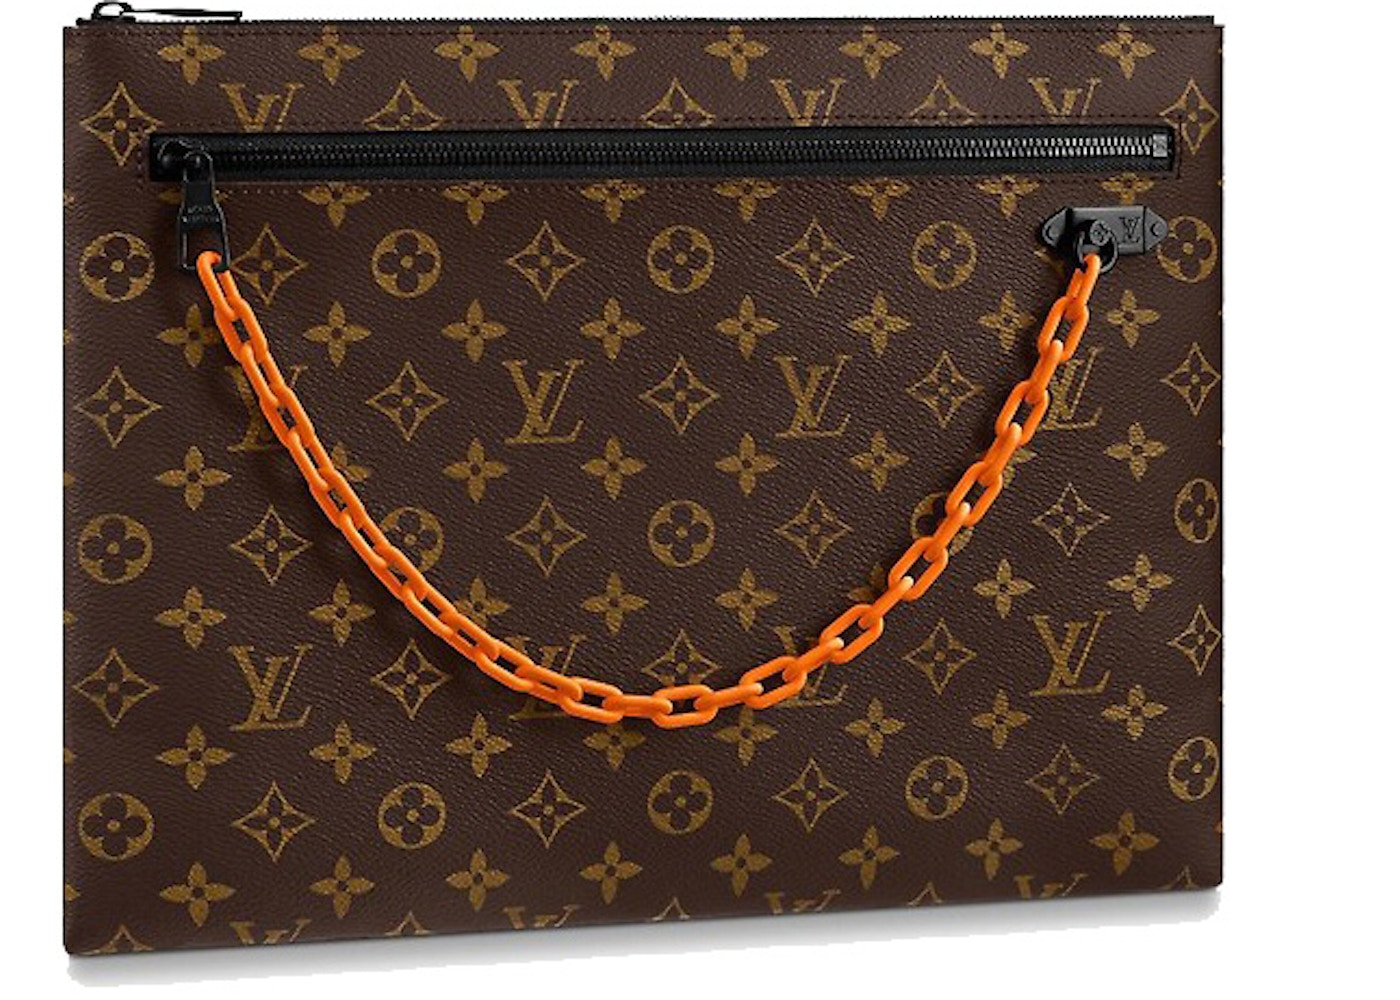 b9de586ed13ef Louis Vuitton A4 Pouch Monogram Brown. Monogram Brown